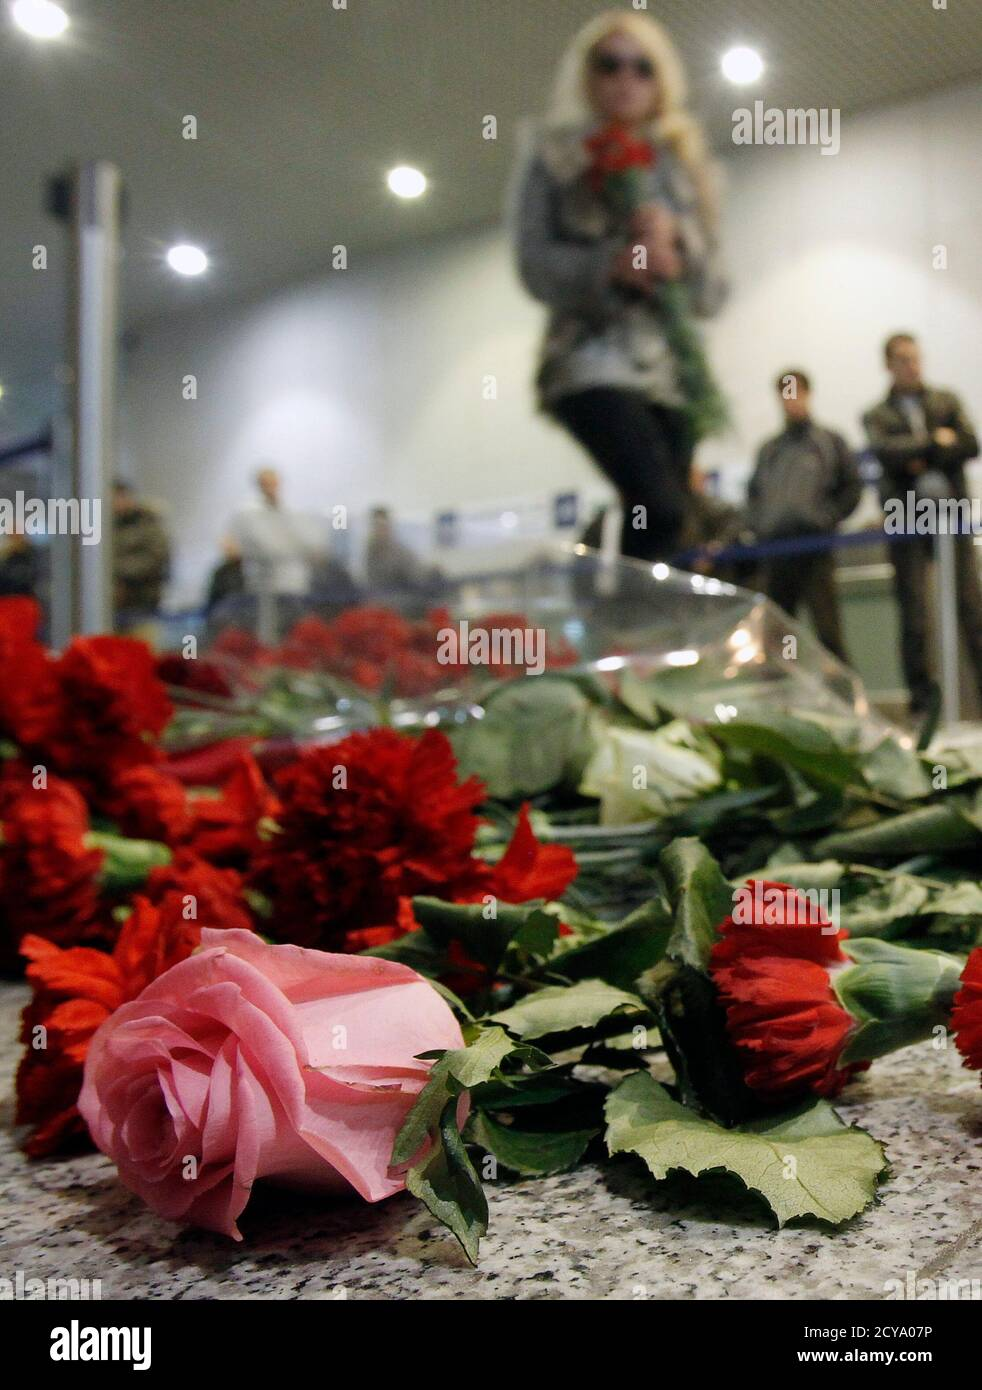 A woman stands next to the flowers left on a floor in memory of those killed in Monday's blast at Moscow's Domodedovo airport January 25, 2011. Russia's President Dmitry Medvedev ordered investigators on Tuesday to root out the culprits behind a deadly bombing at Russia's busiest airport and threatened sackings over security lapses he said had aided the attack. REUTERS/Denis Sinyakov (RUSSIA - Tags: CRIME LAW TRANSPORT) Stock Photo